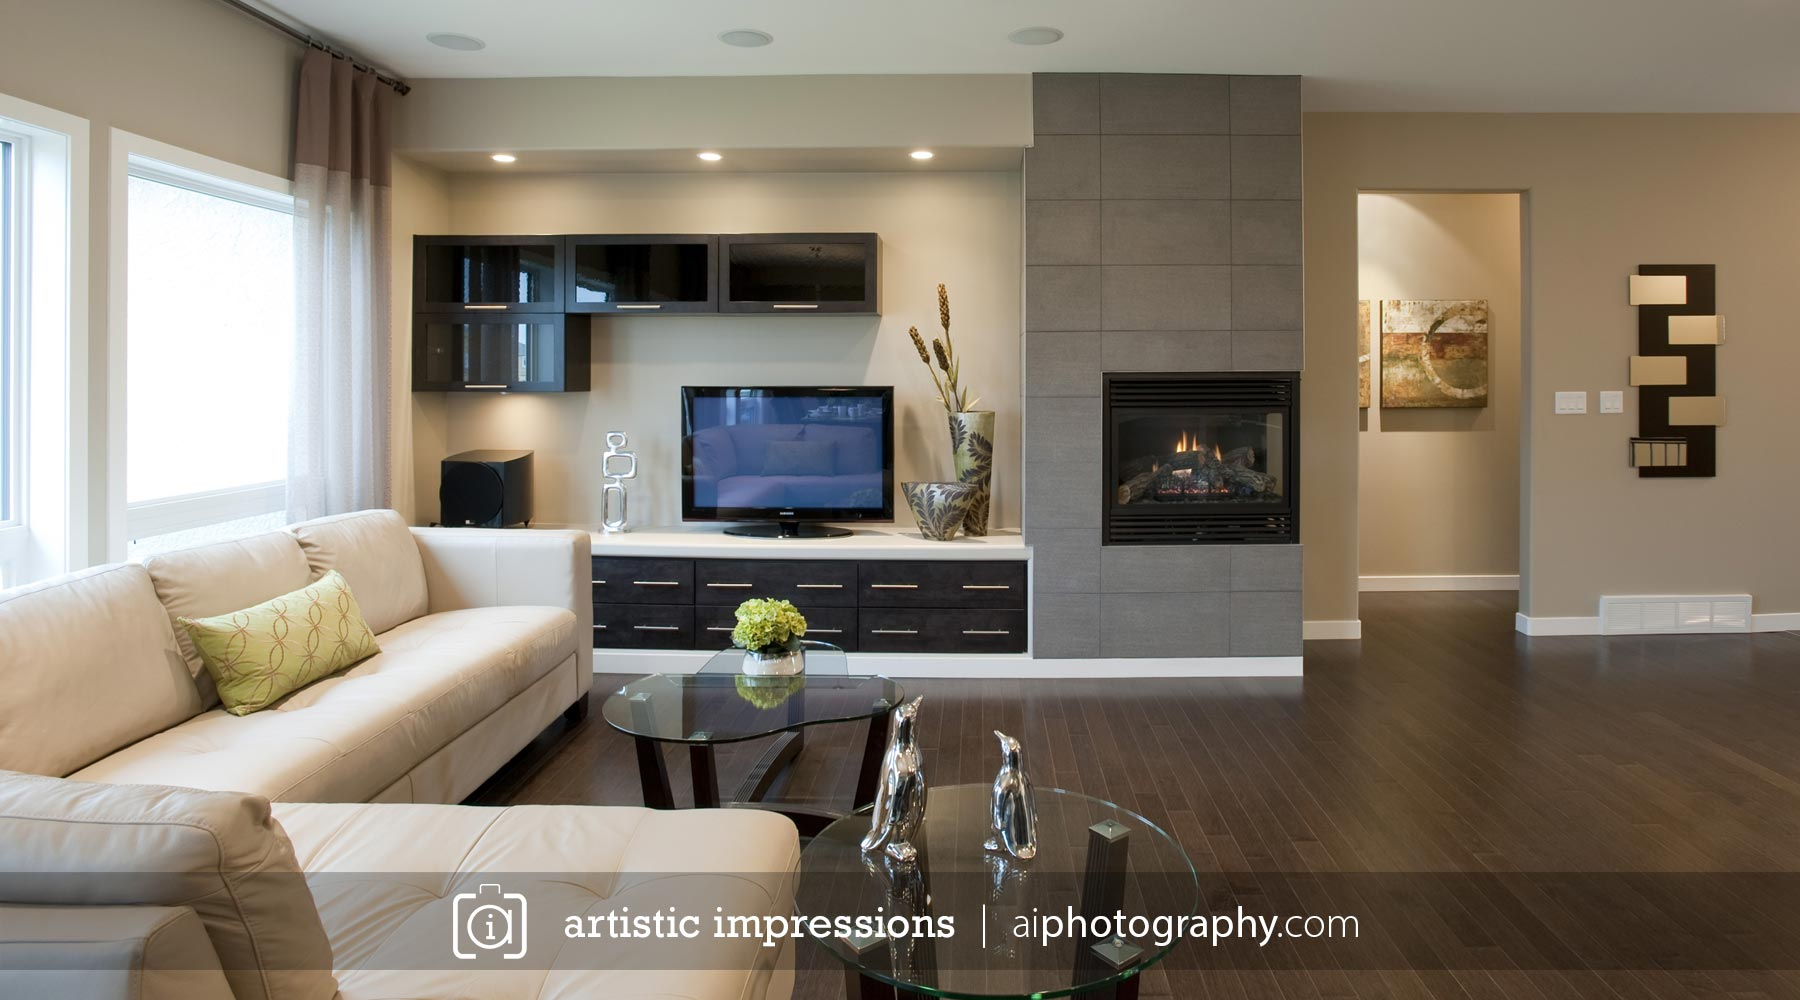 Photographer Winnipeg Interior Advertising Residential Home Builders Designers Photography Architecture Parkhill Homes 1